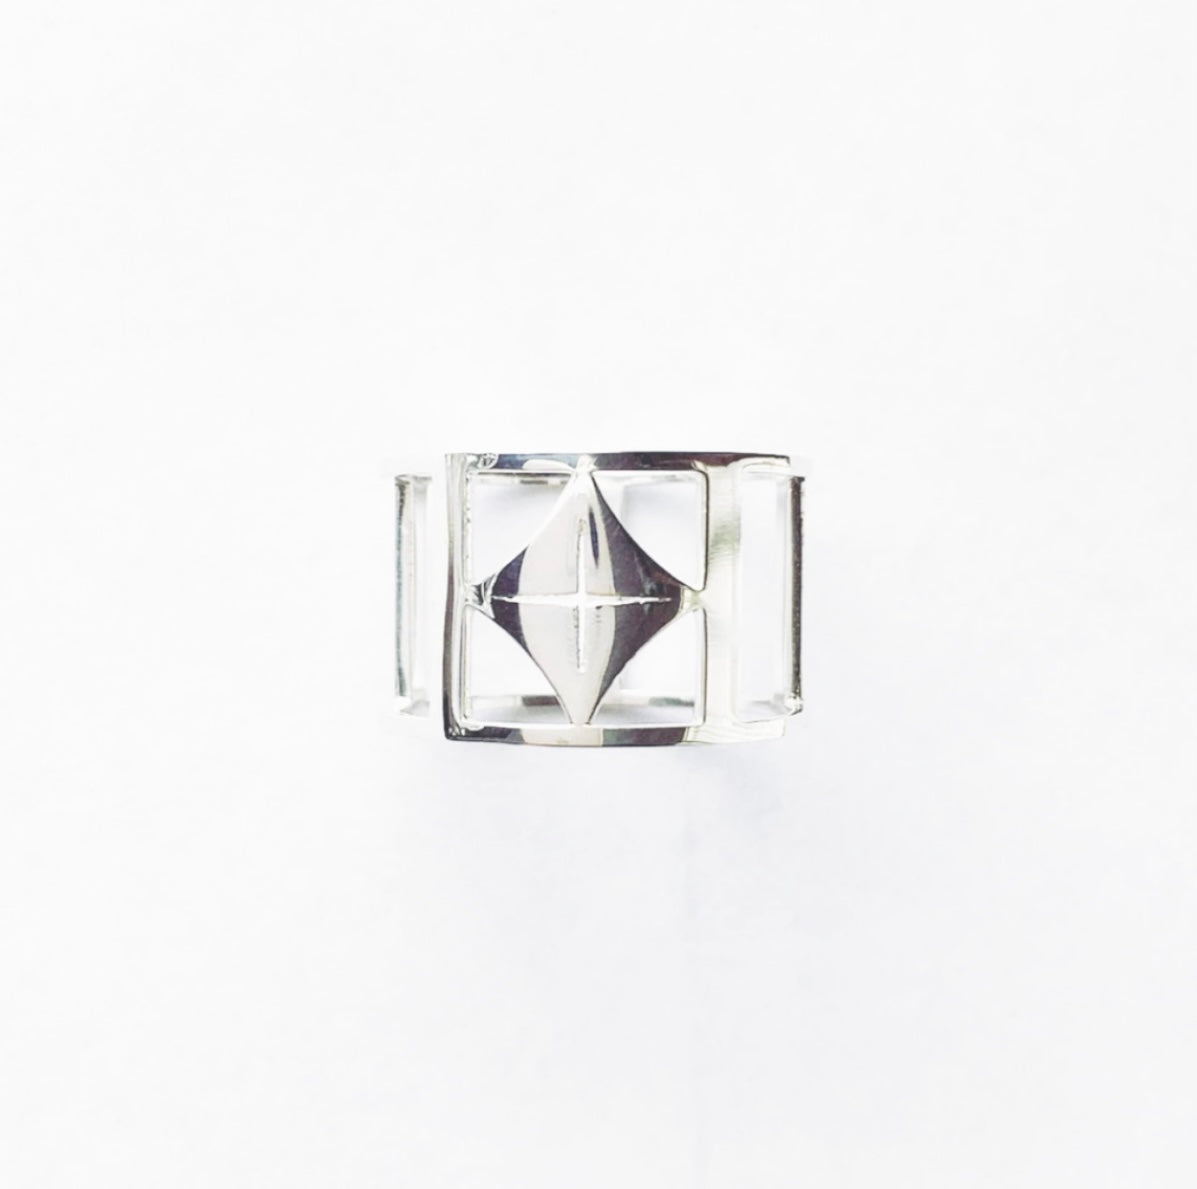 O.H.M. Classic Ring (Rhodium-Plated)